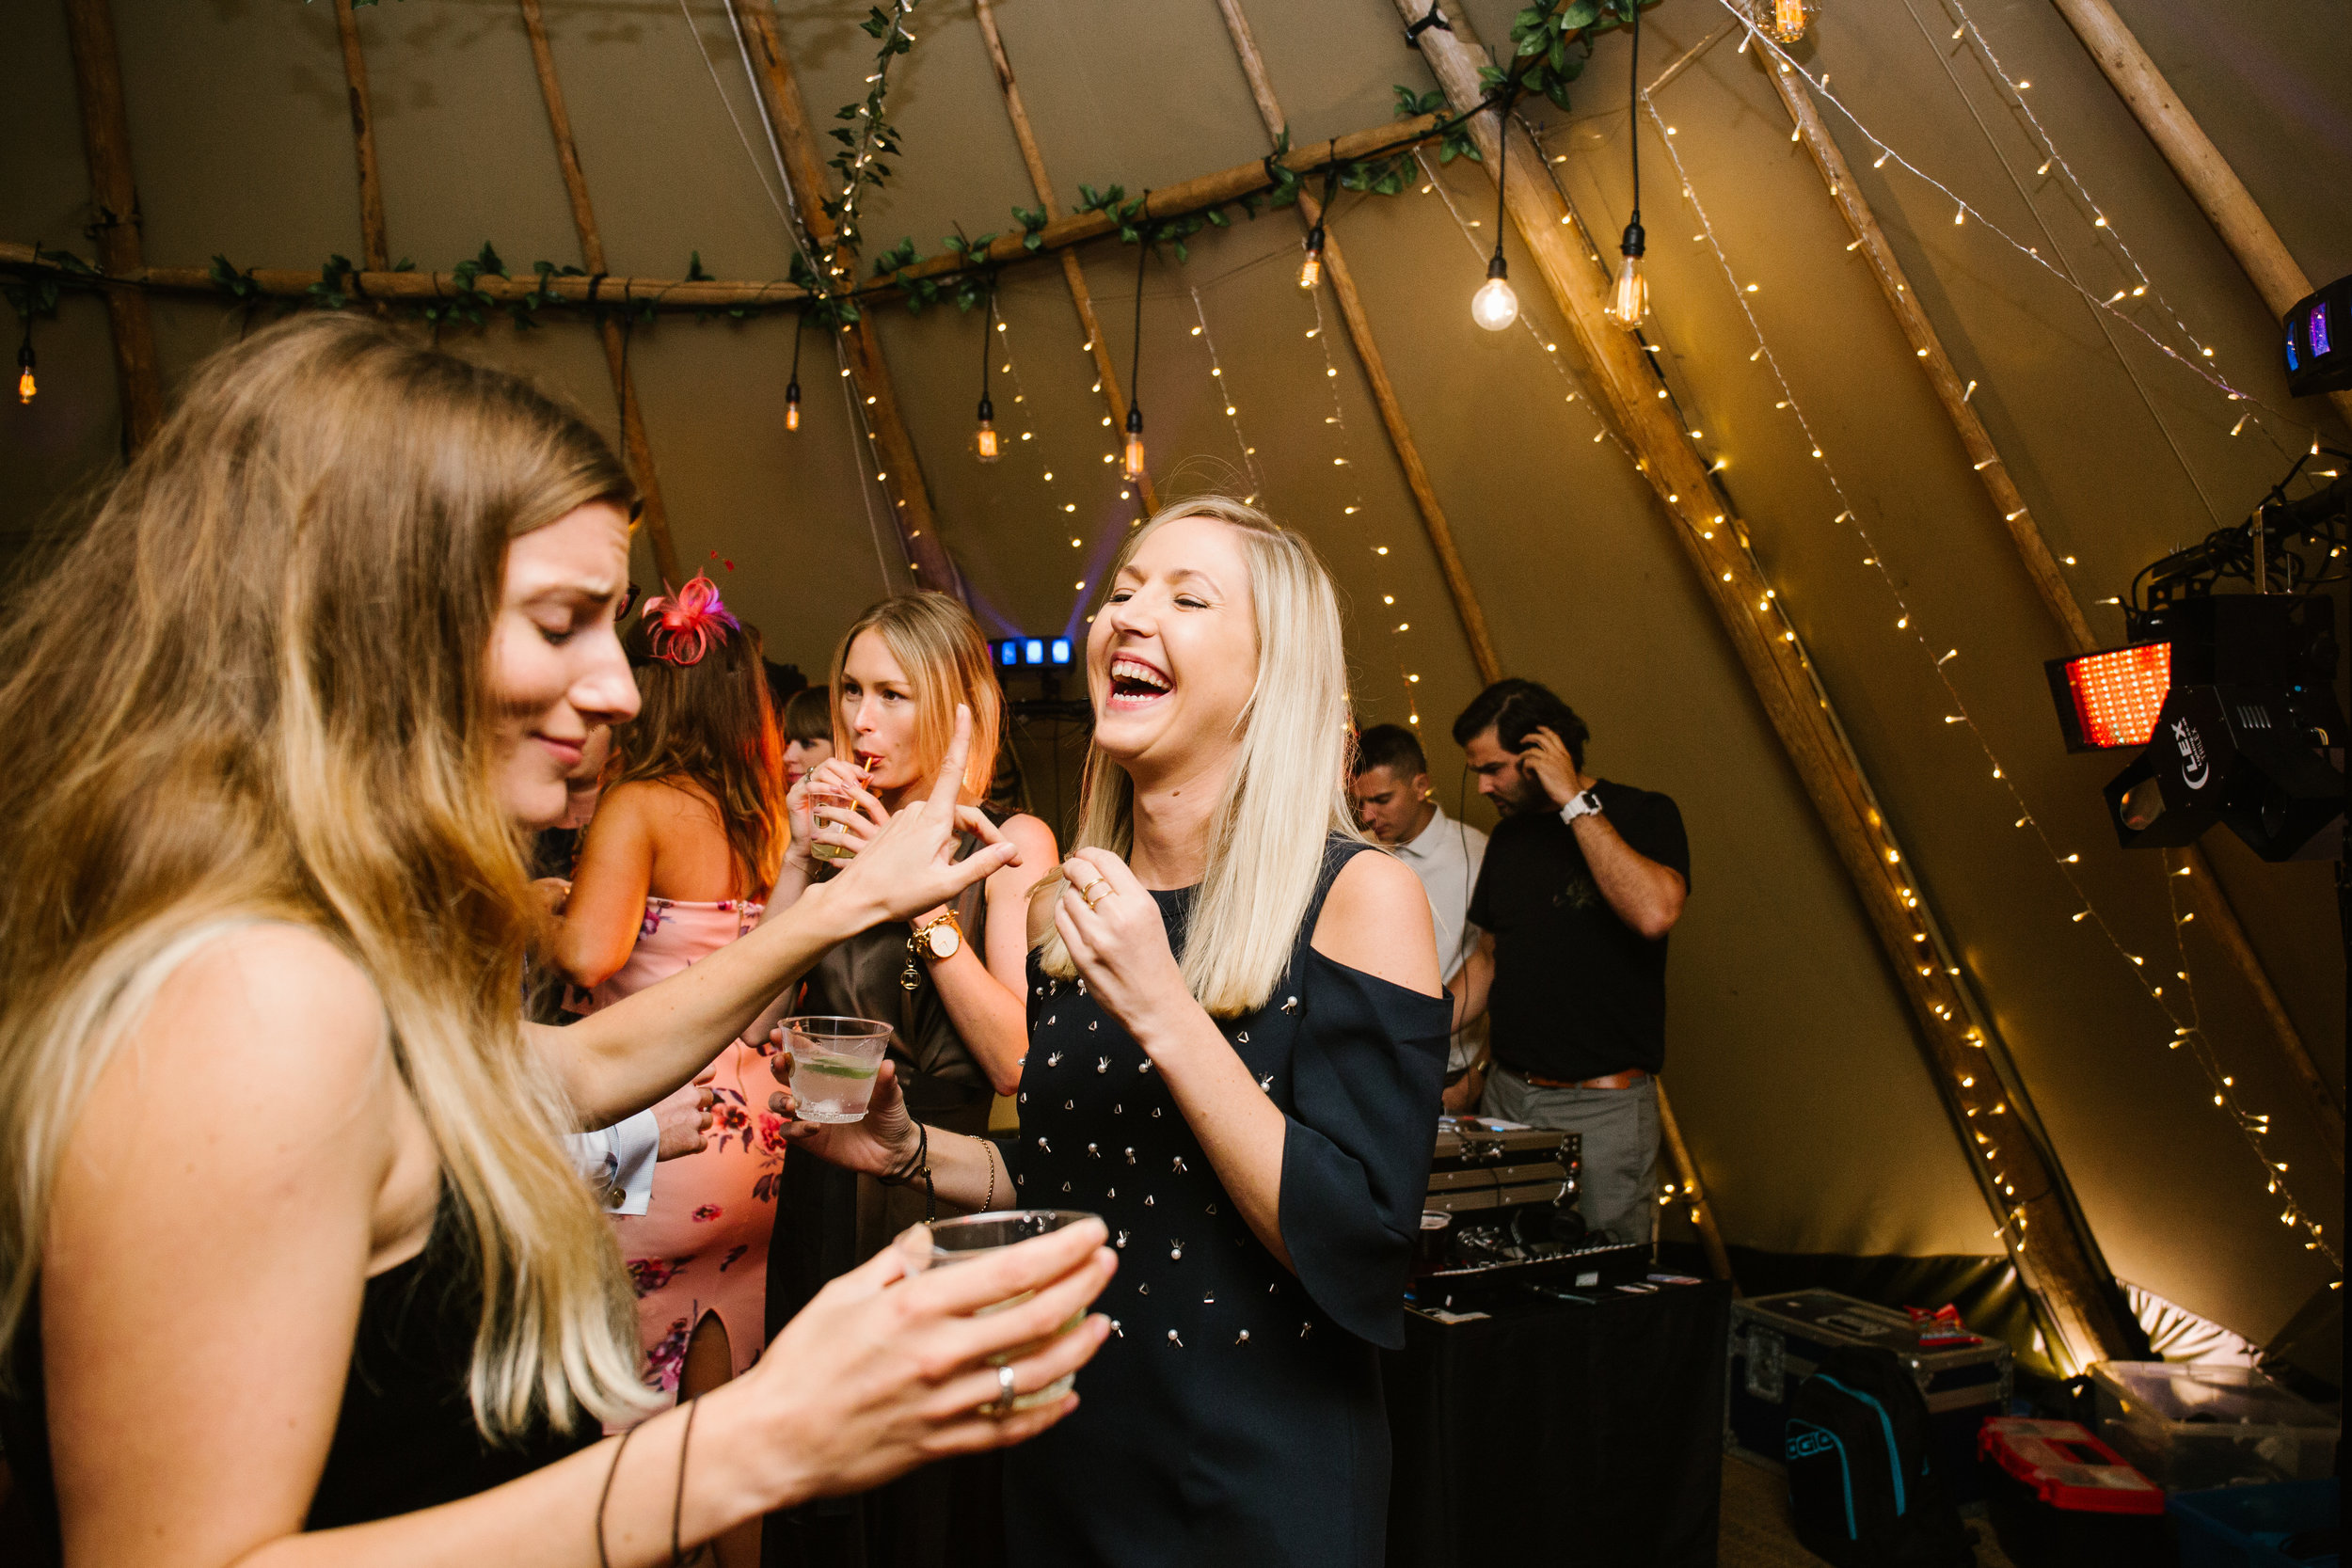 natural photo of wedding guests laughing on the dance floor at a tipi wedding